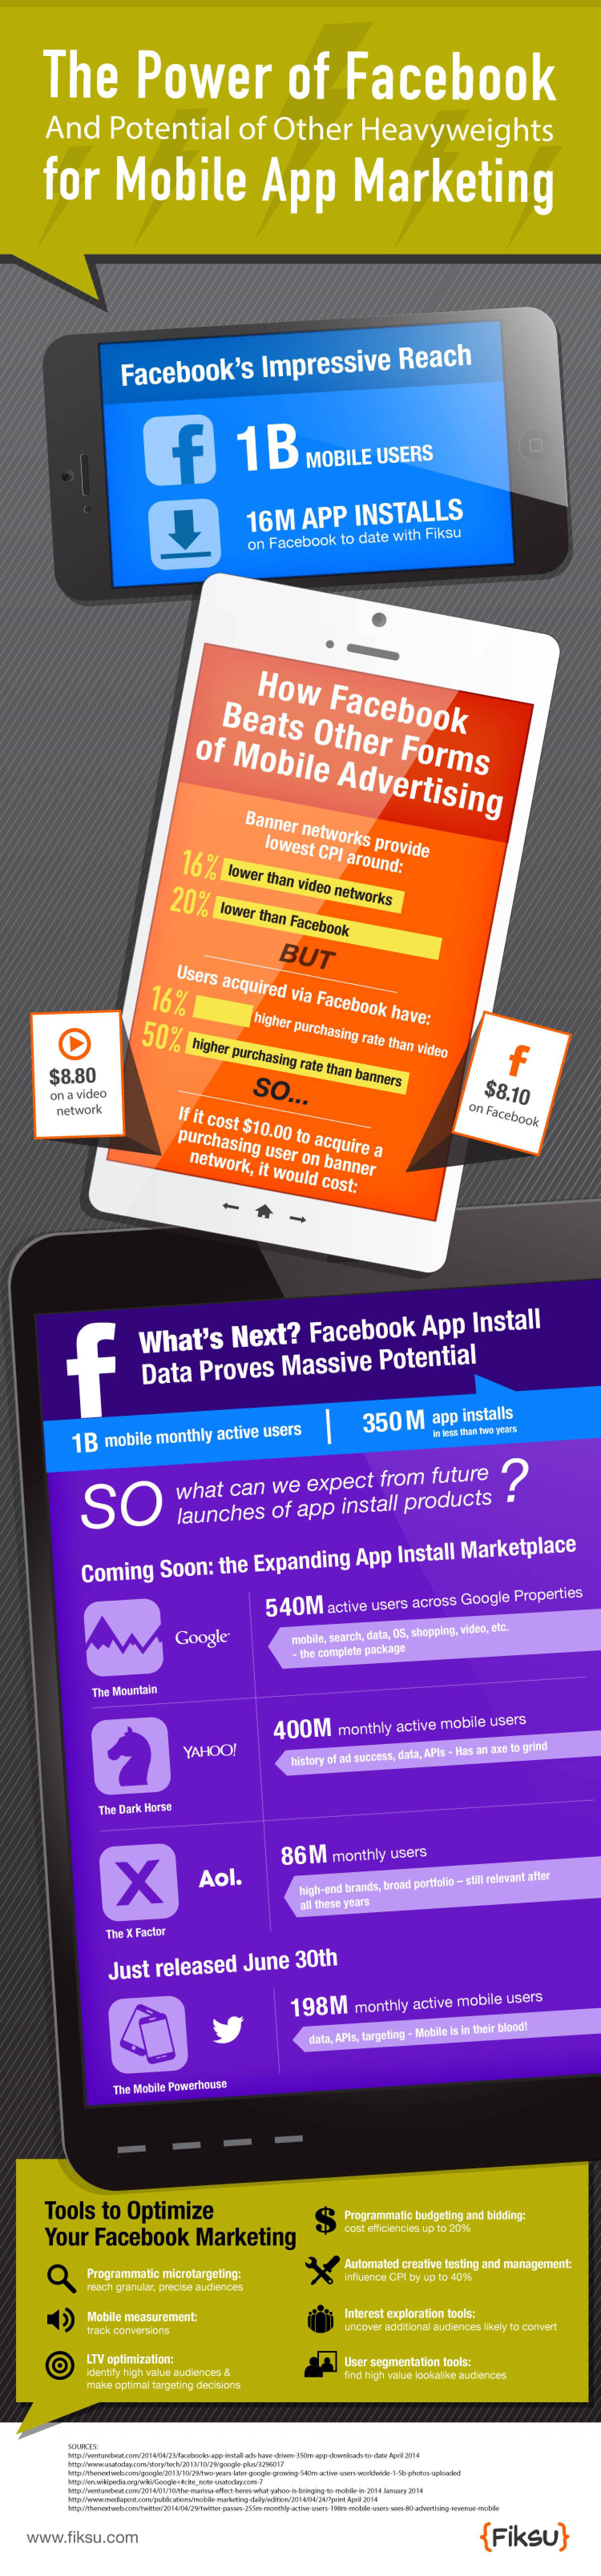 The Power of Facebook (and Potential of Other Heavyweights) for Mobile App Marketing